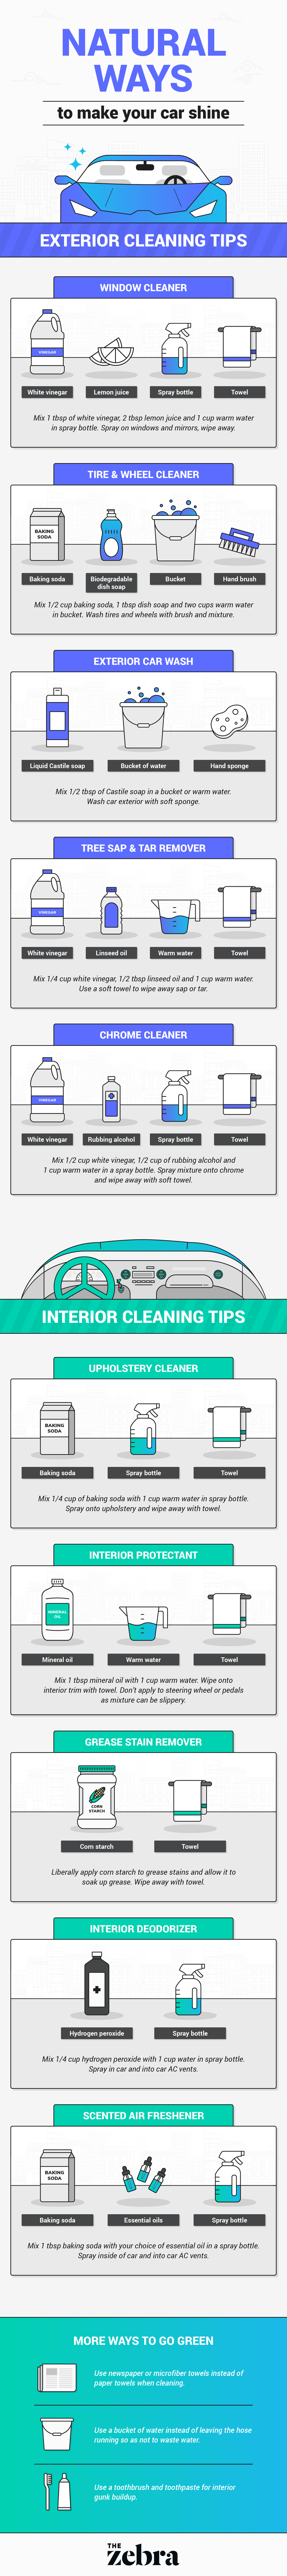 natural car cleaners you can make at home. safe products. make your car shine